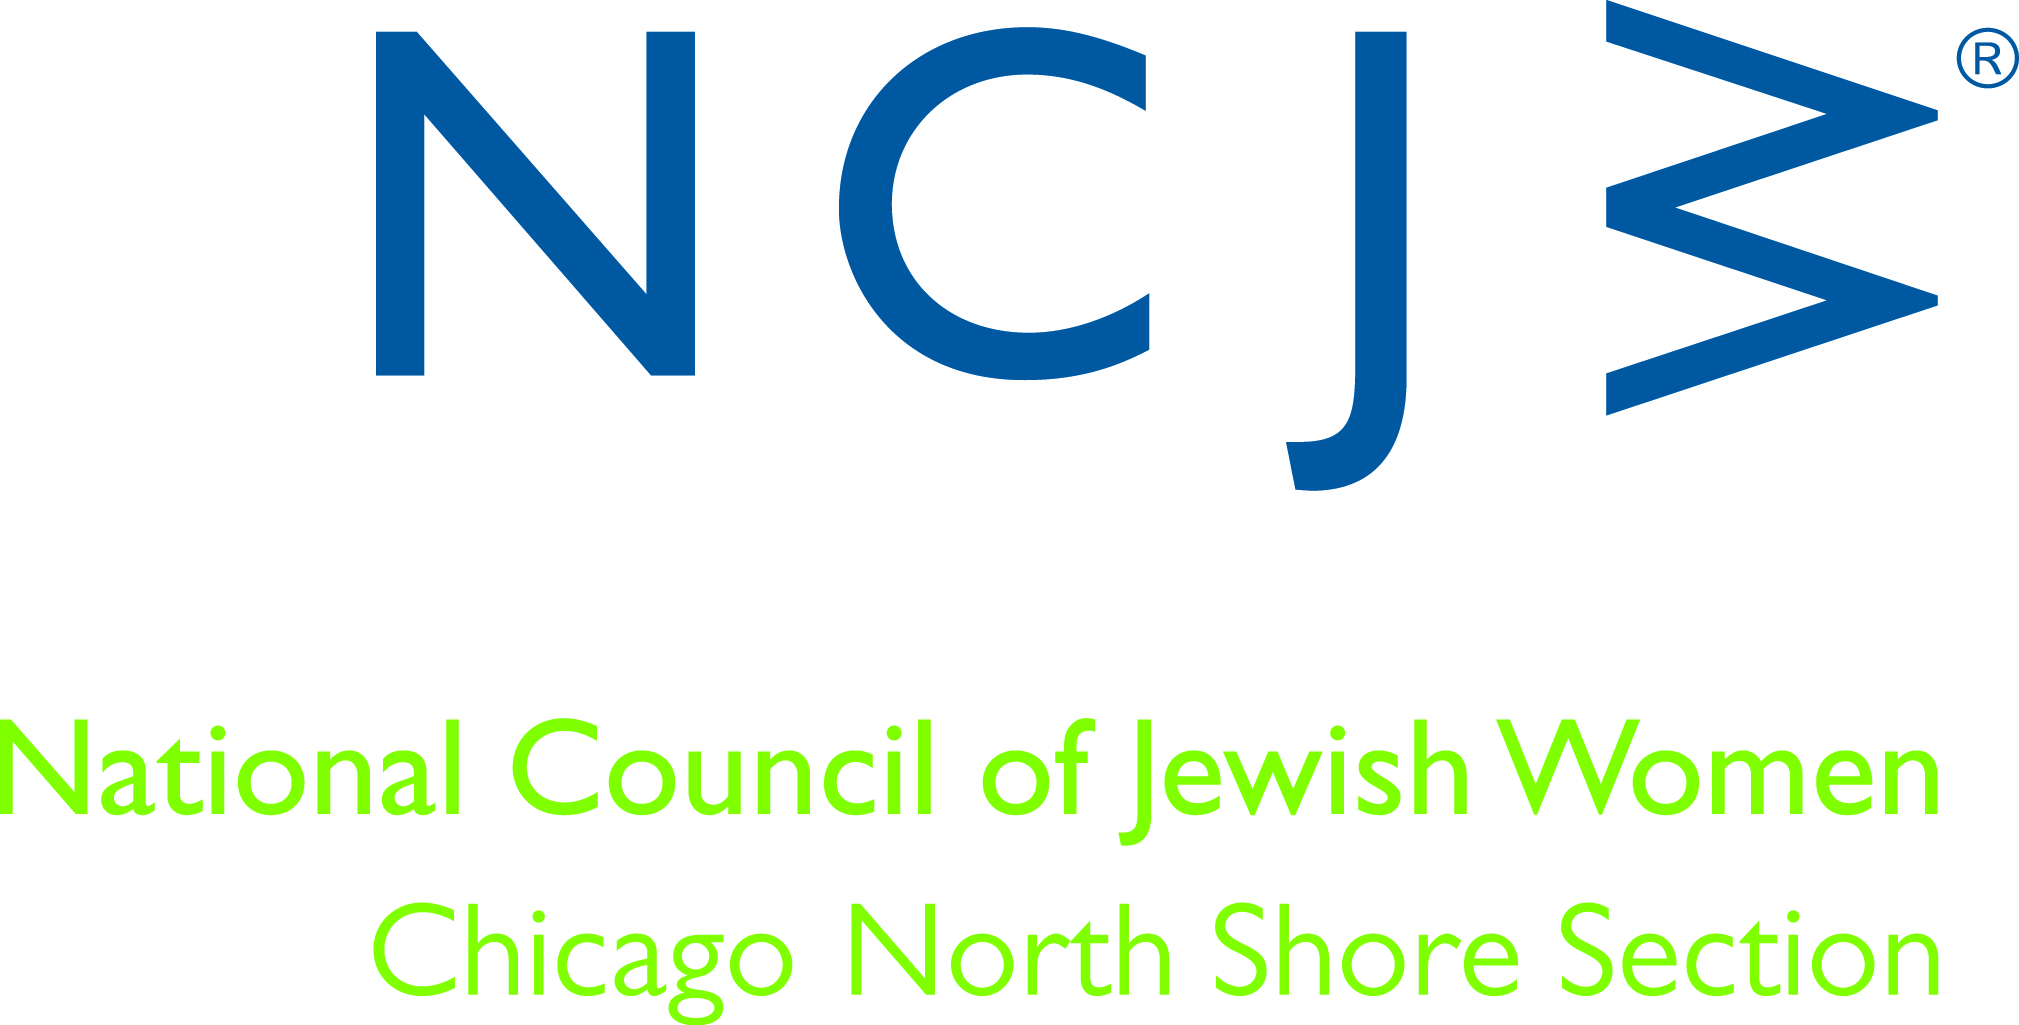 NationalCouncilofJewishWomen.jpg